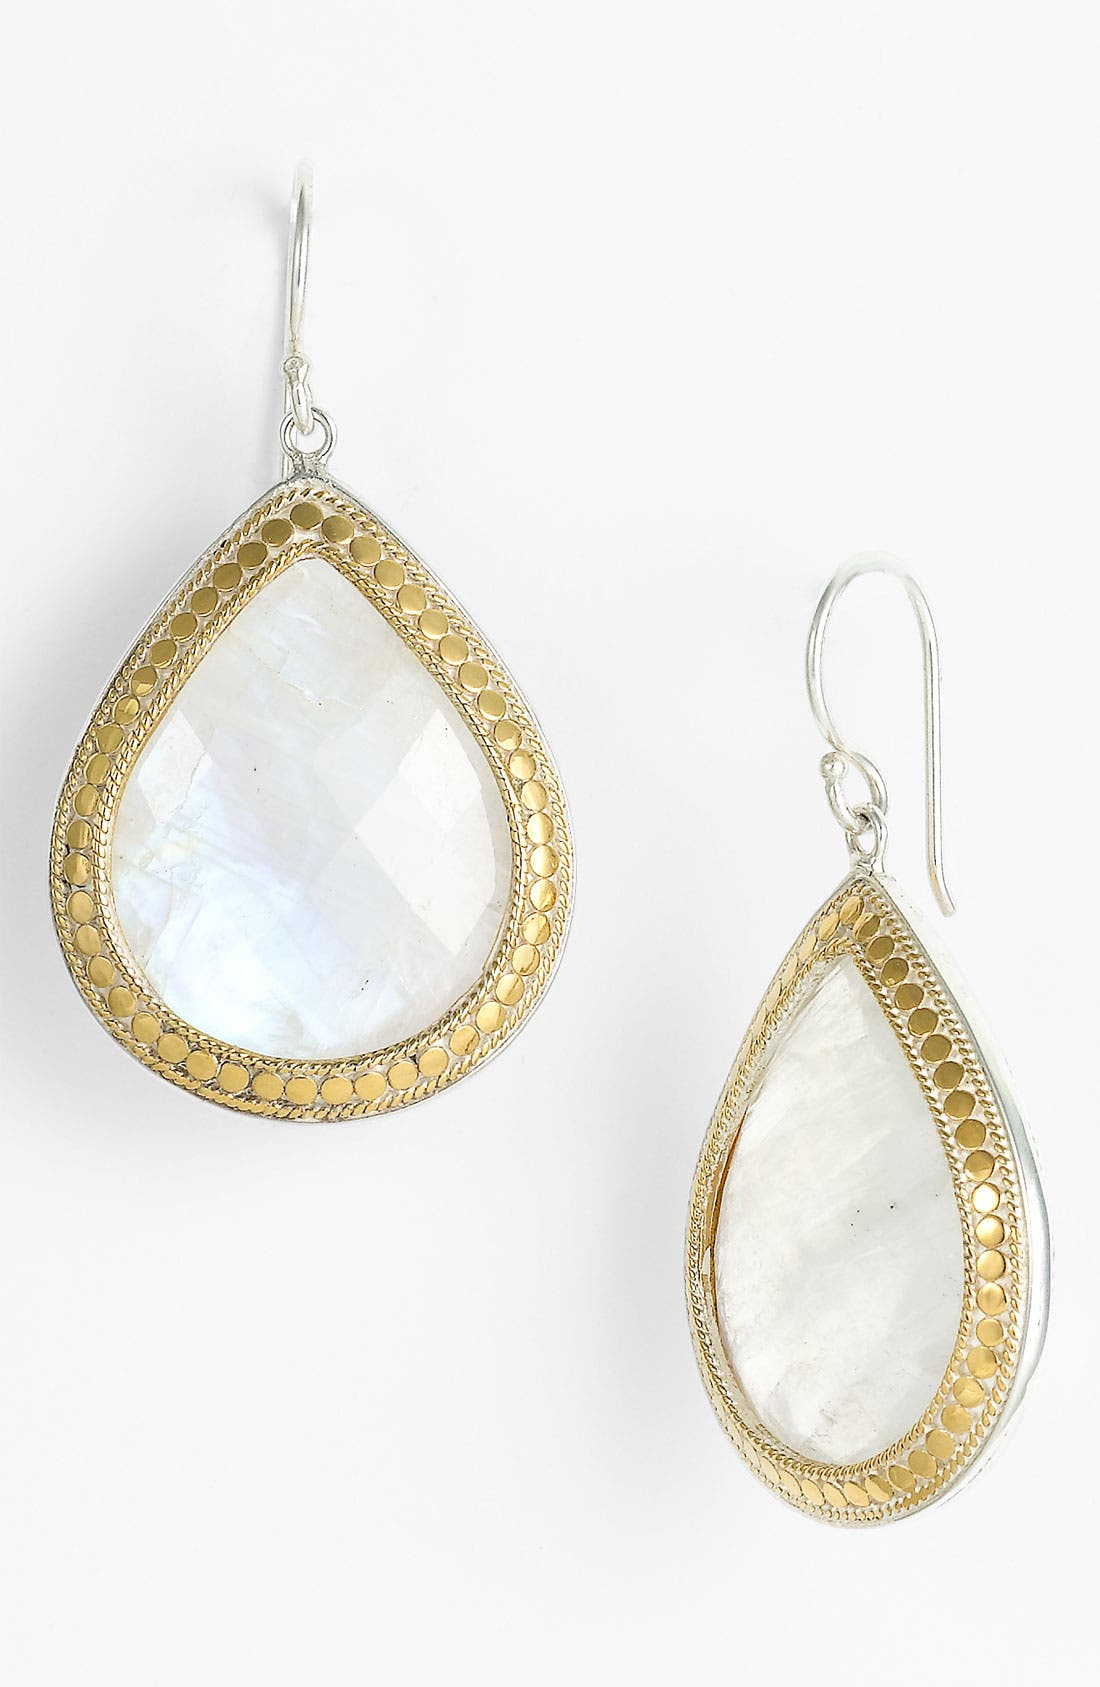 Main Image - Anna Beck 'Gili' Large Stone Teardrop Earrings (Nordstrom Exclusive)